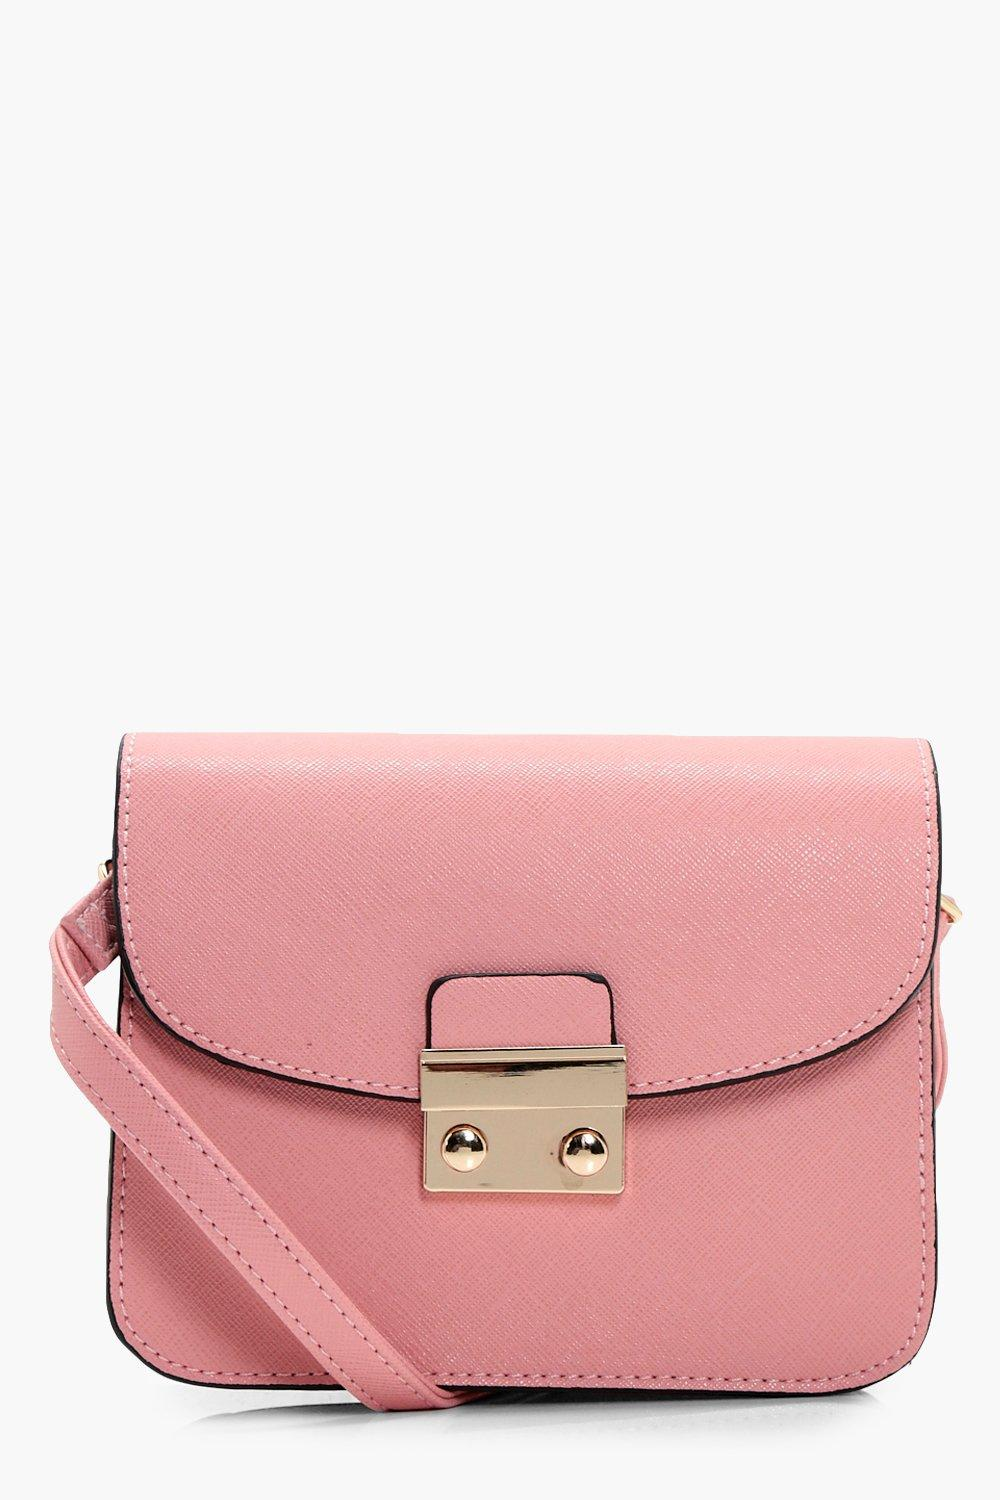 Lock Front Mini Cross Body Bag - blush - Eve Lock